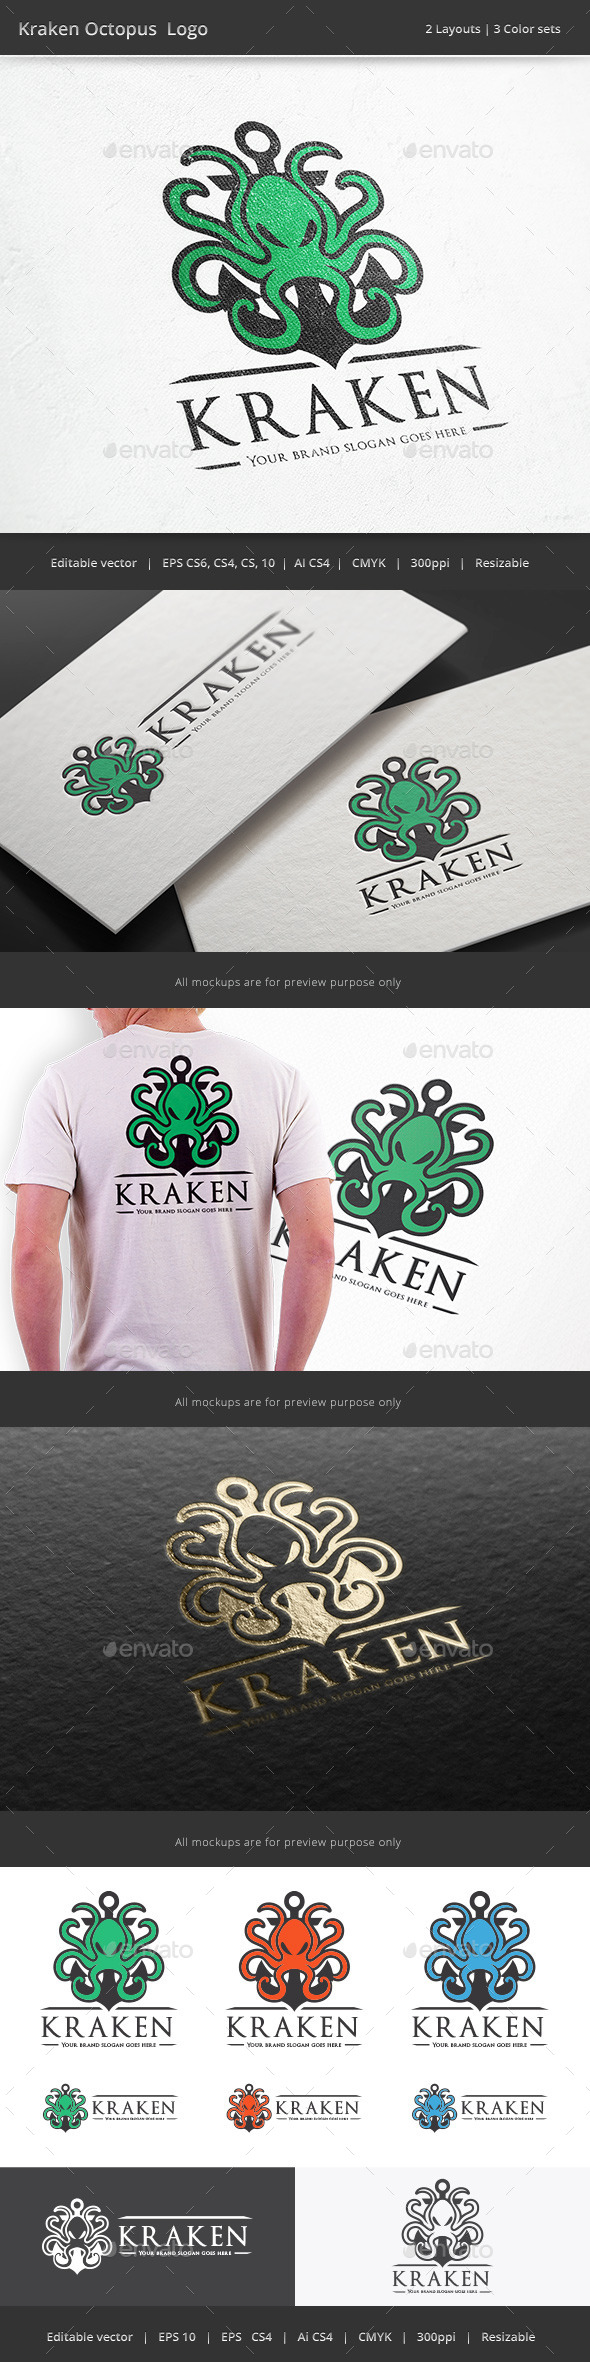 GraphicRiver Kraken Octopus 9891841